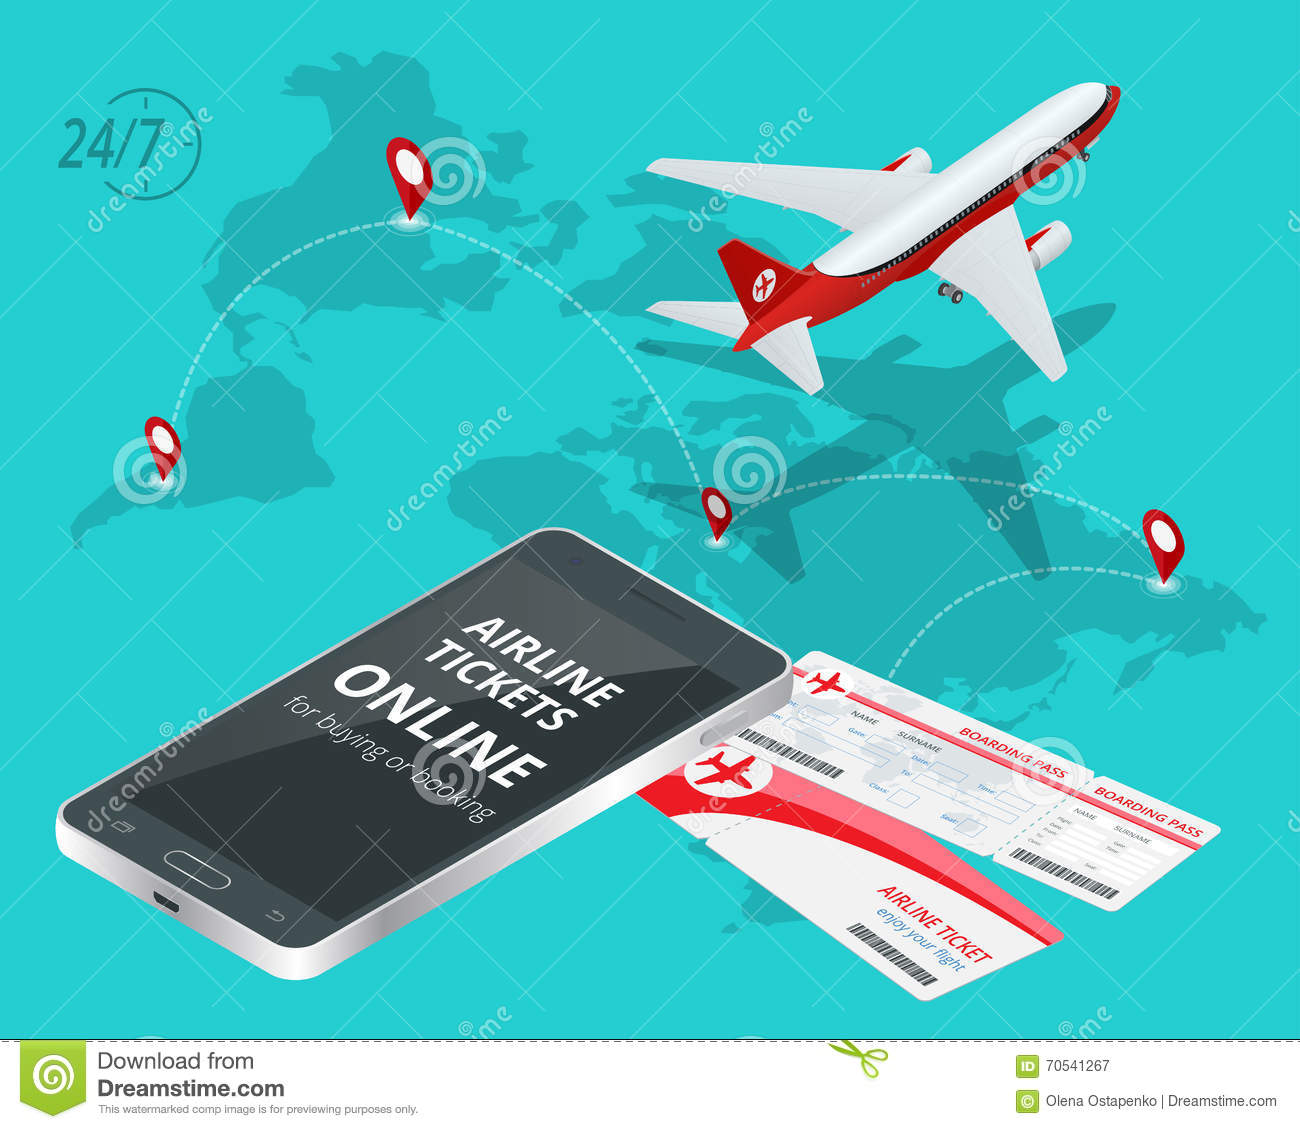 how to buy open return flight ticket online